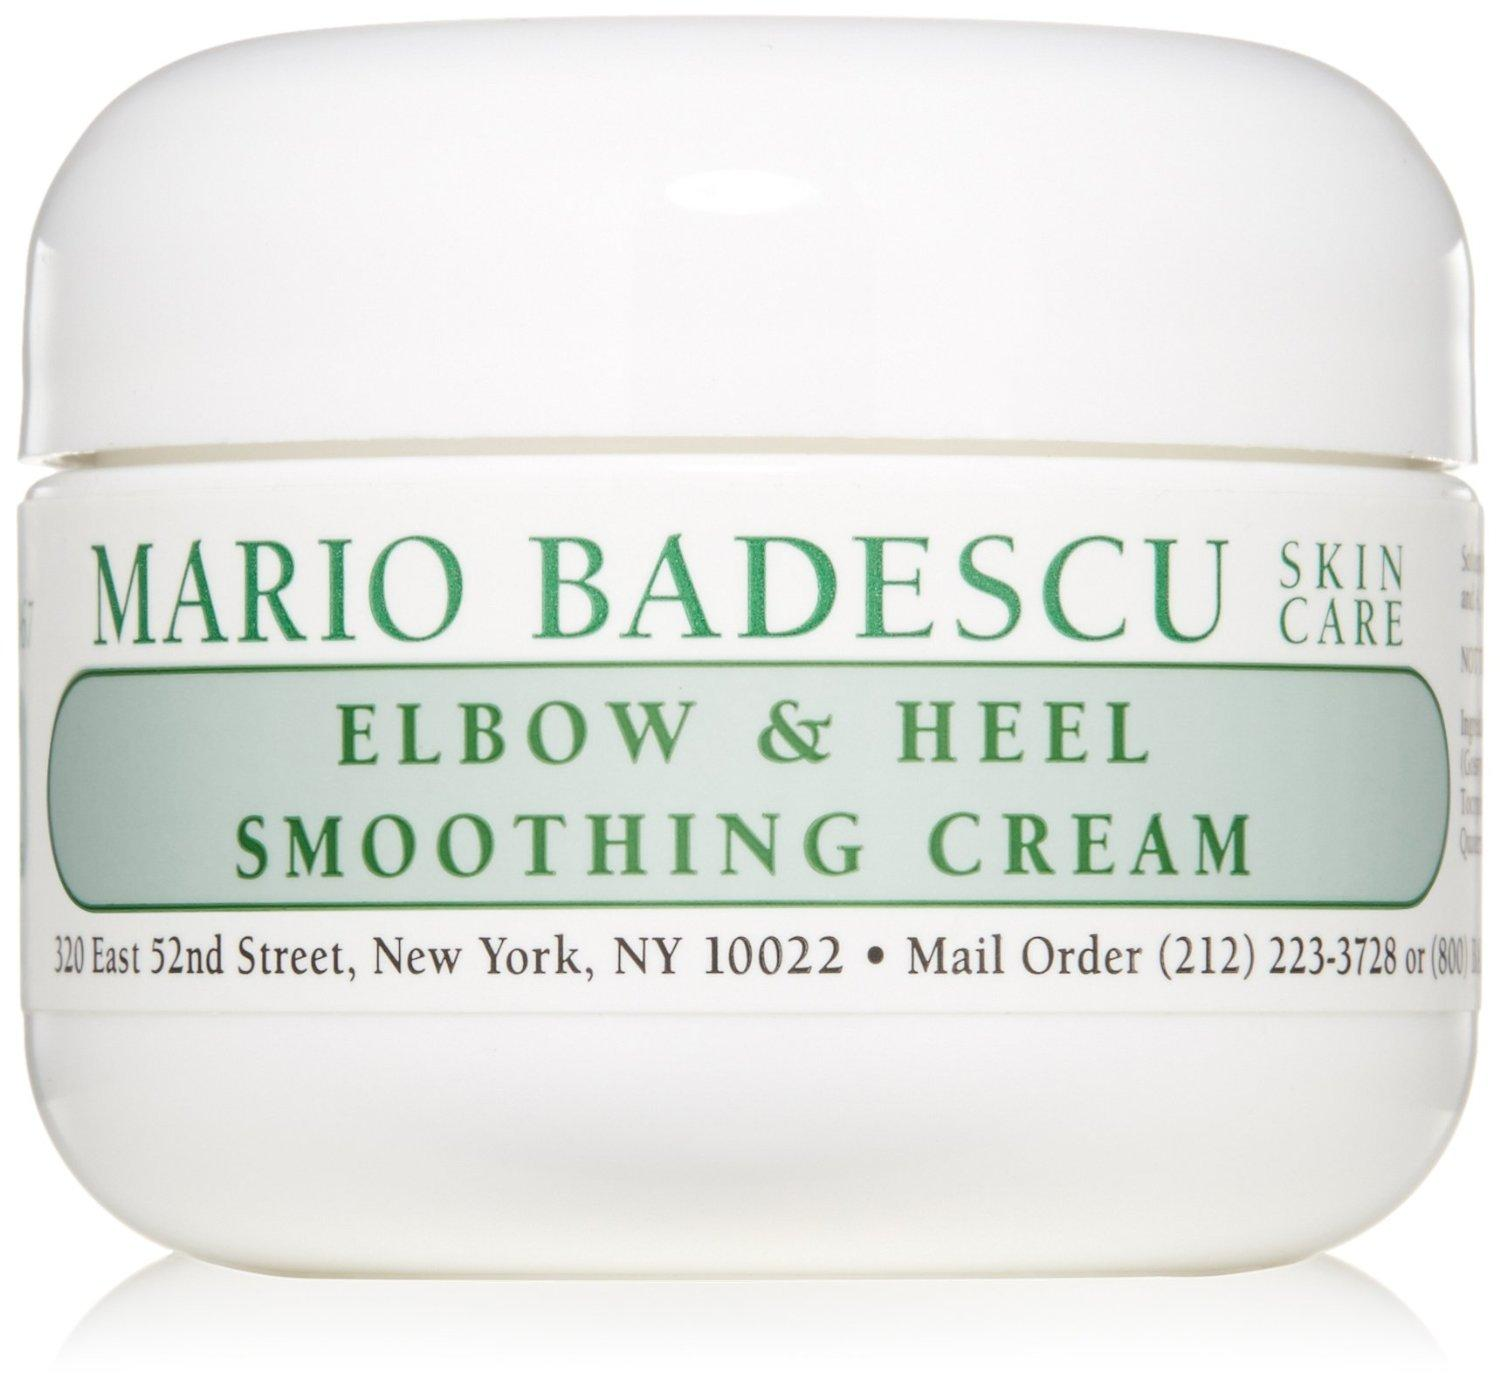 Mario Badescu Elbow & Heel Smoothing Cream, 2 oz.